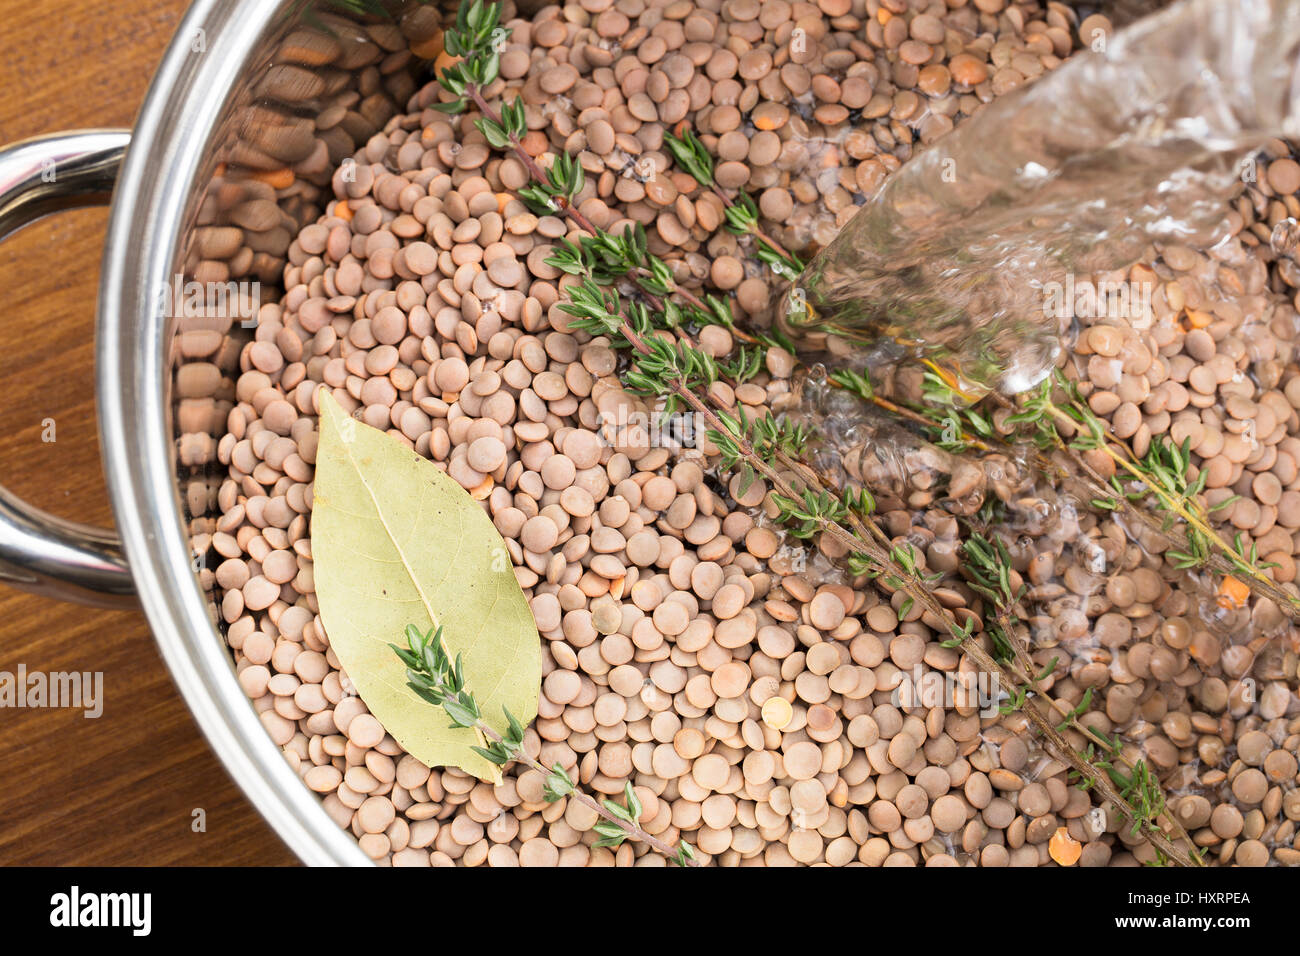 Water being poured into pot of lentils and herbs for making soup - Stock Image